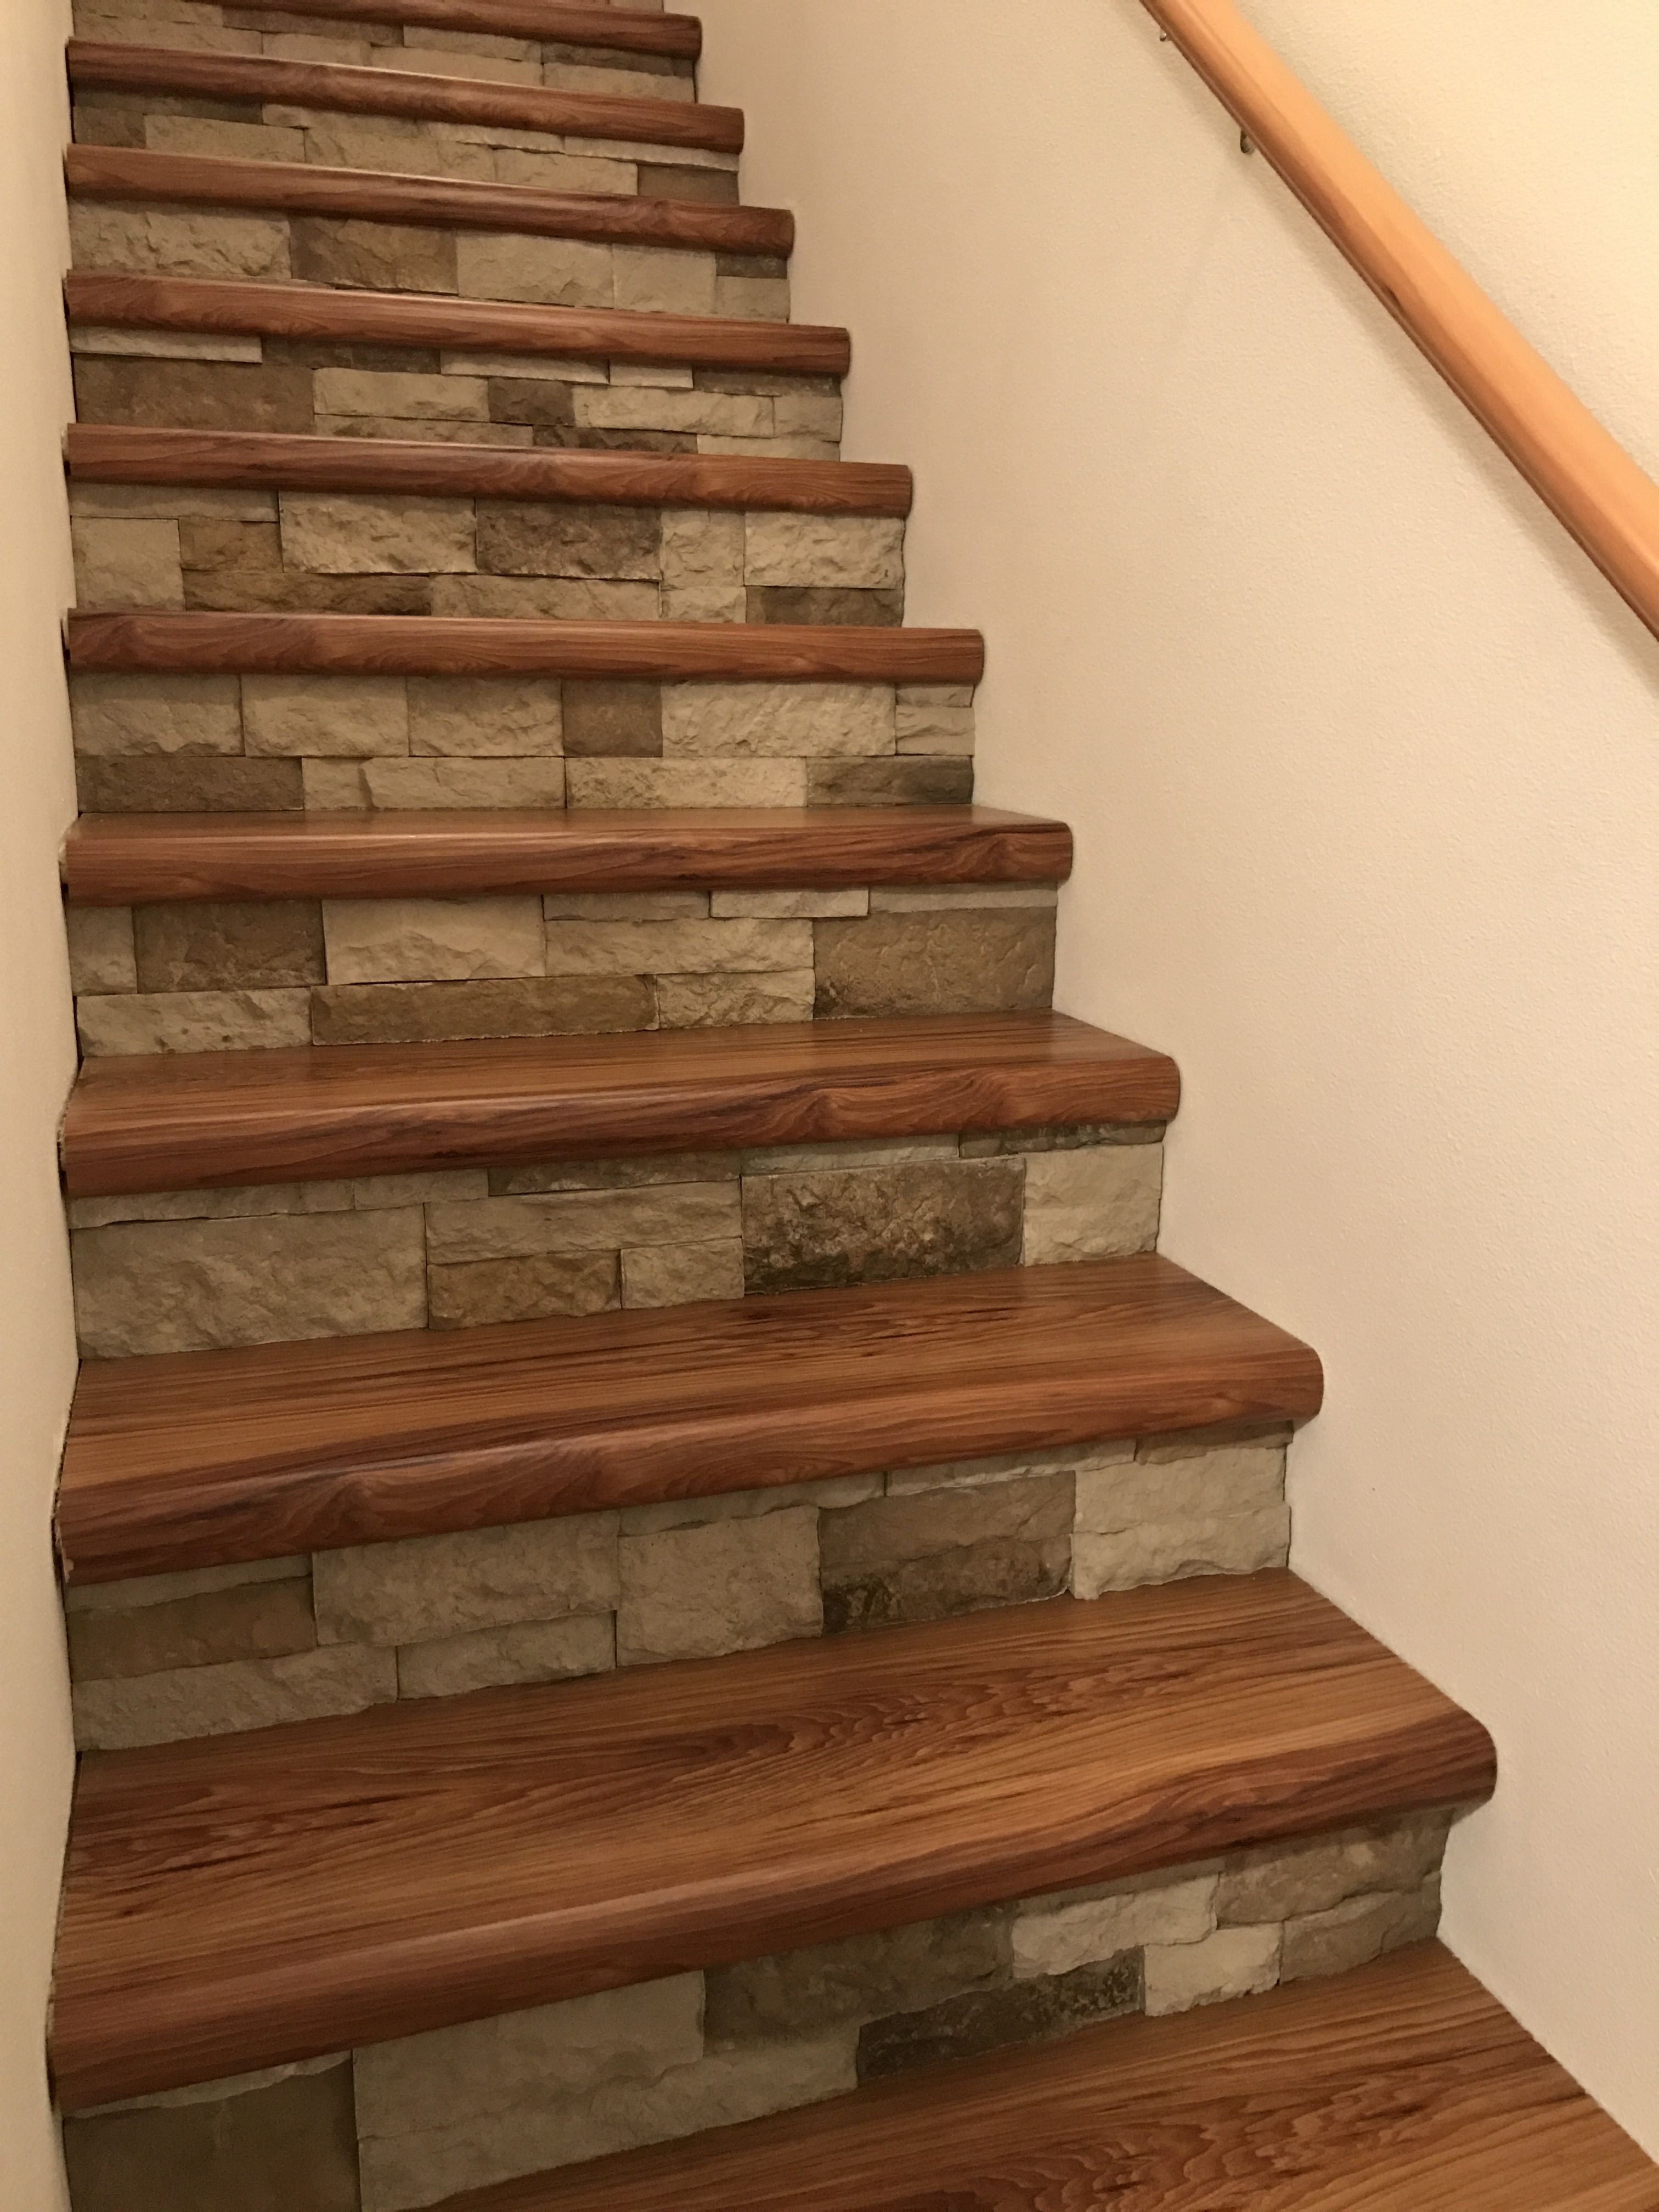 Cap a Tread and airstone stairs. No more carpet! Took